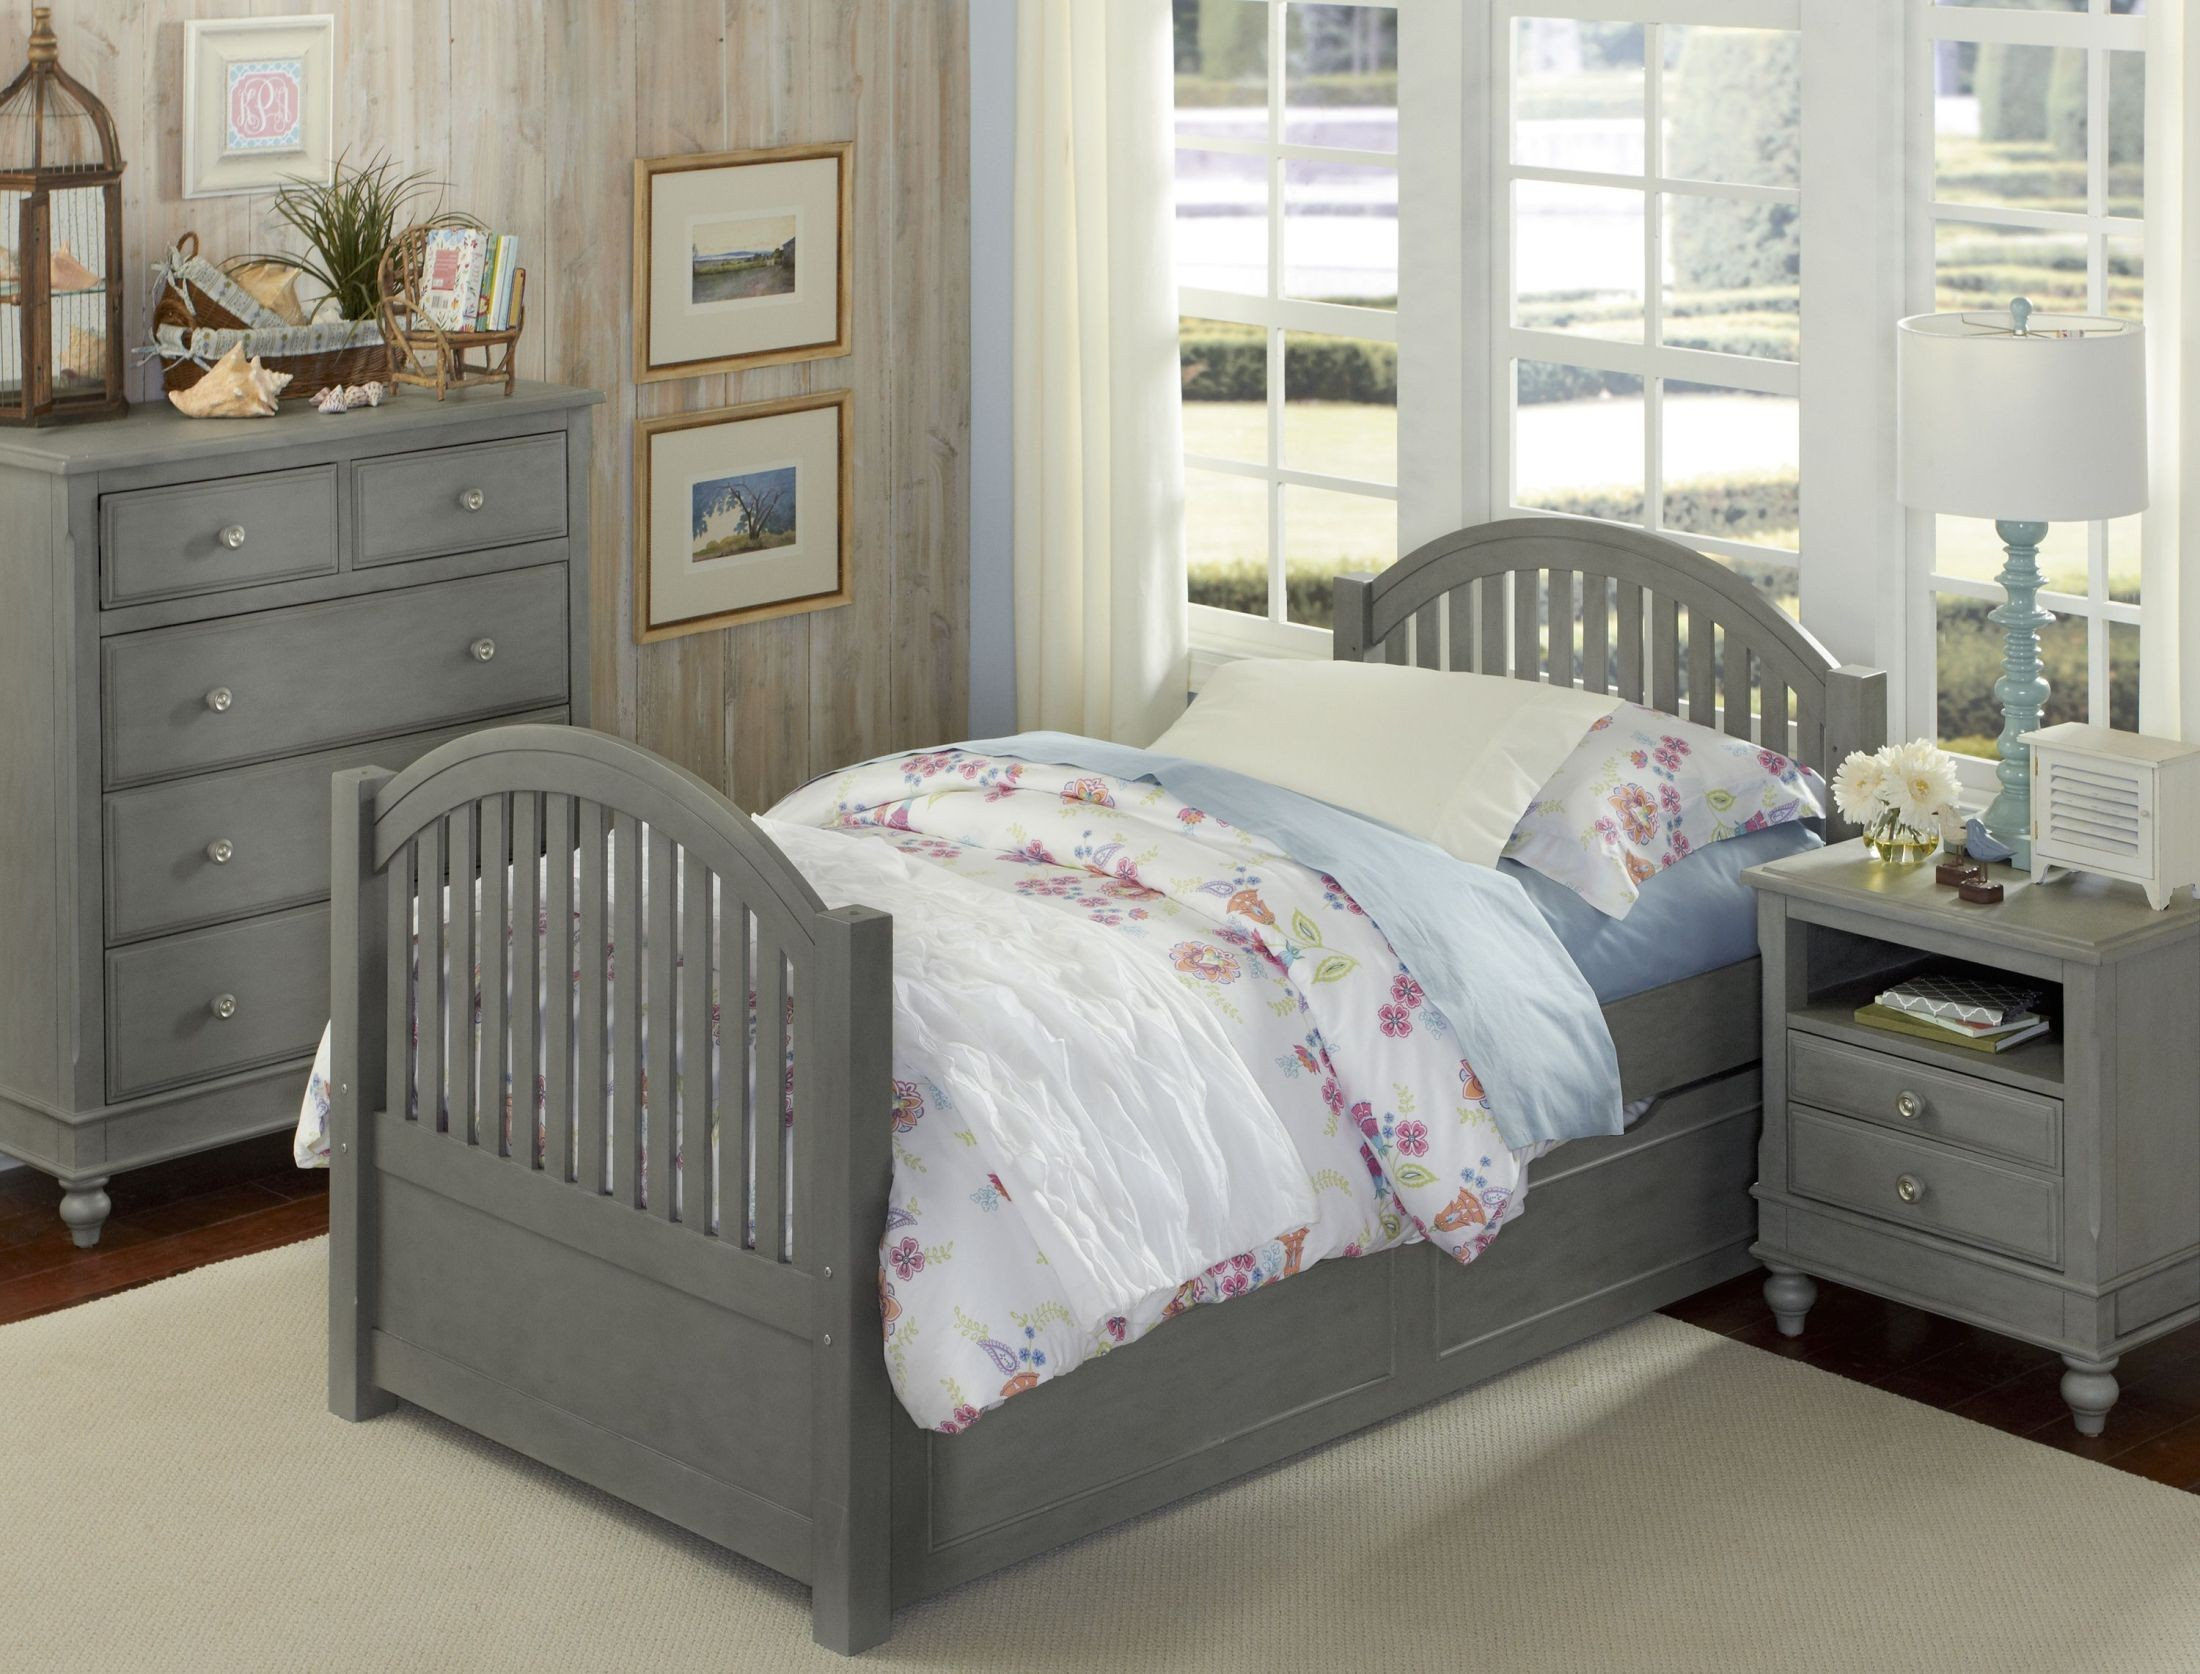 Lake house stone adrian youth panel bedroom set with trundle from ne kids coleman furniture Lake home bedroom furniture